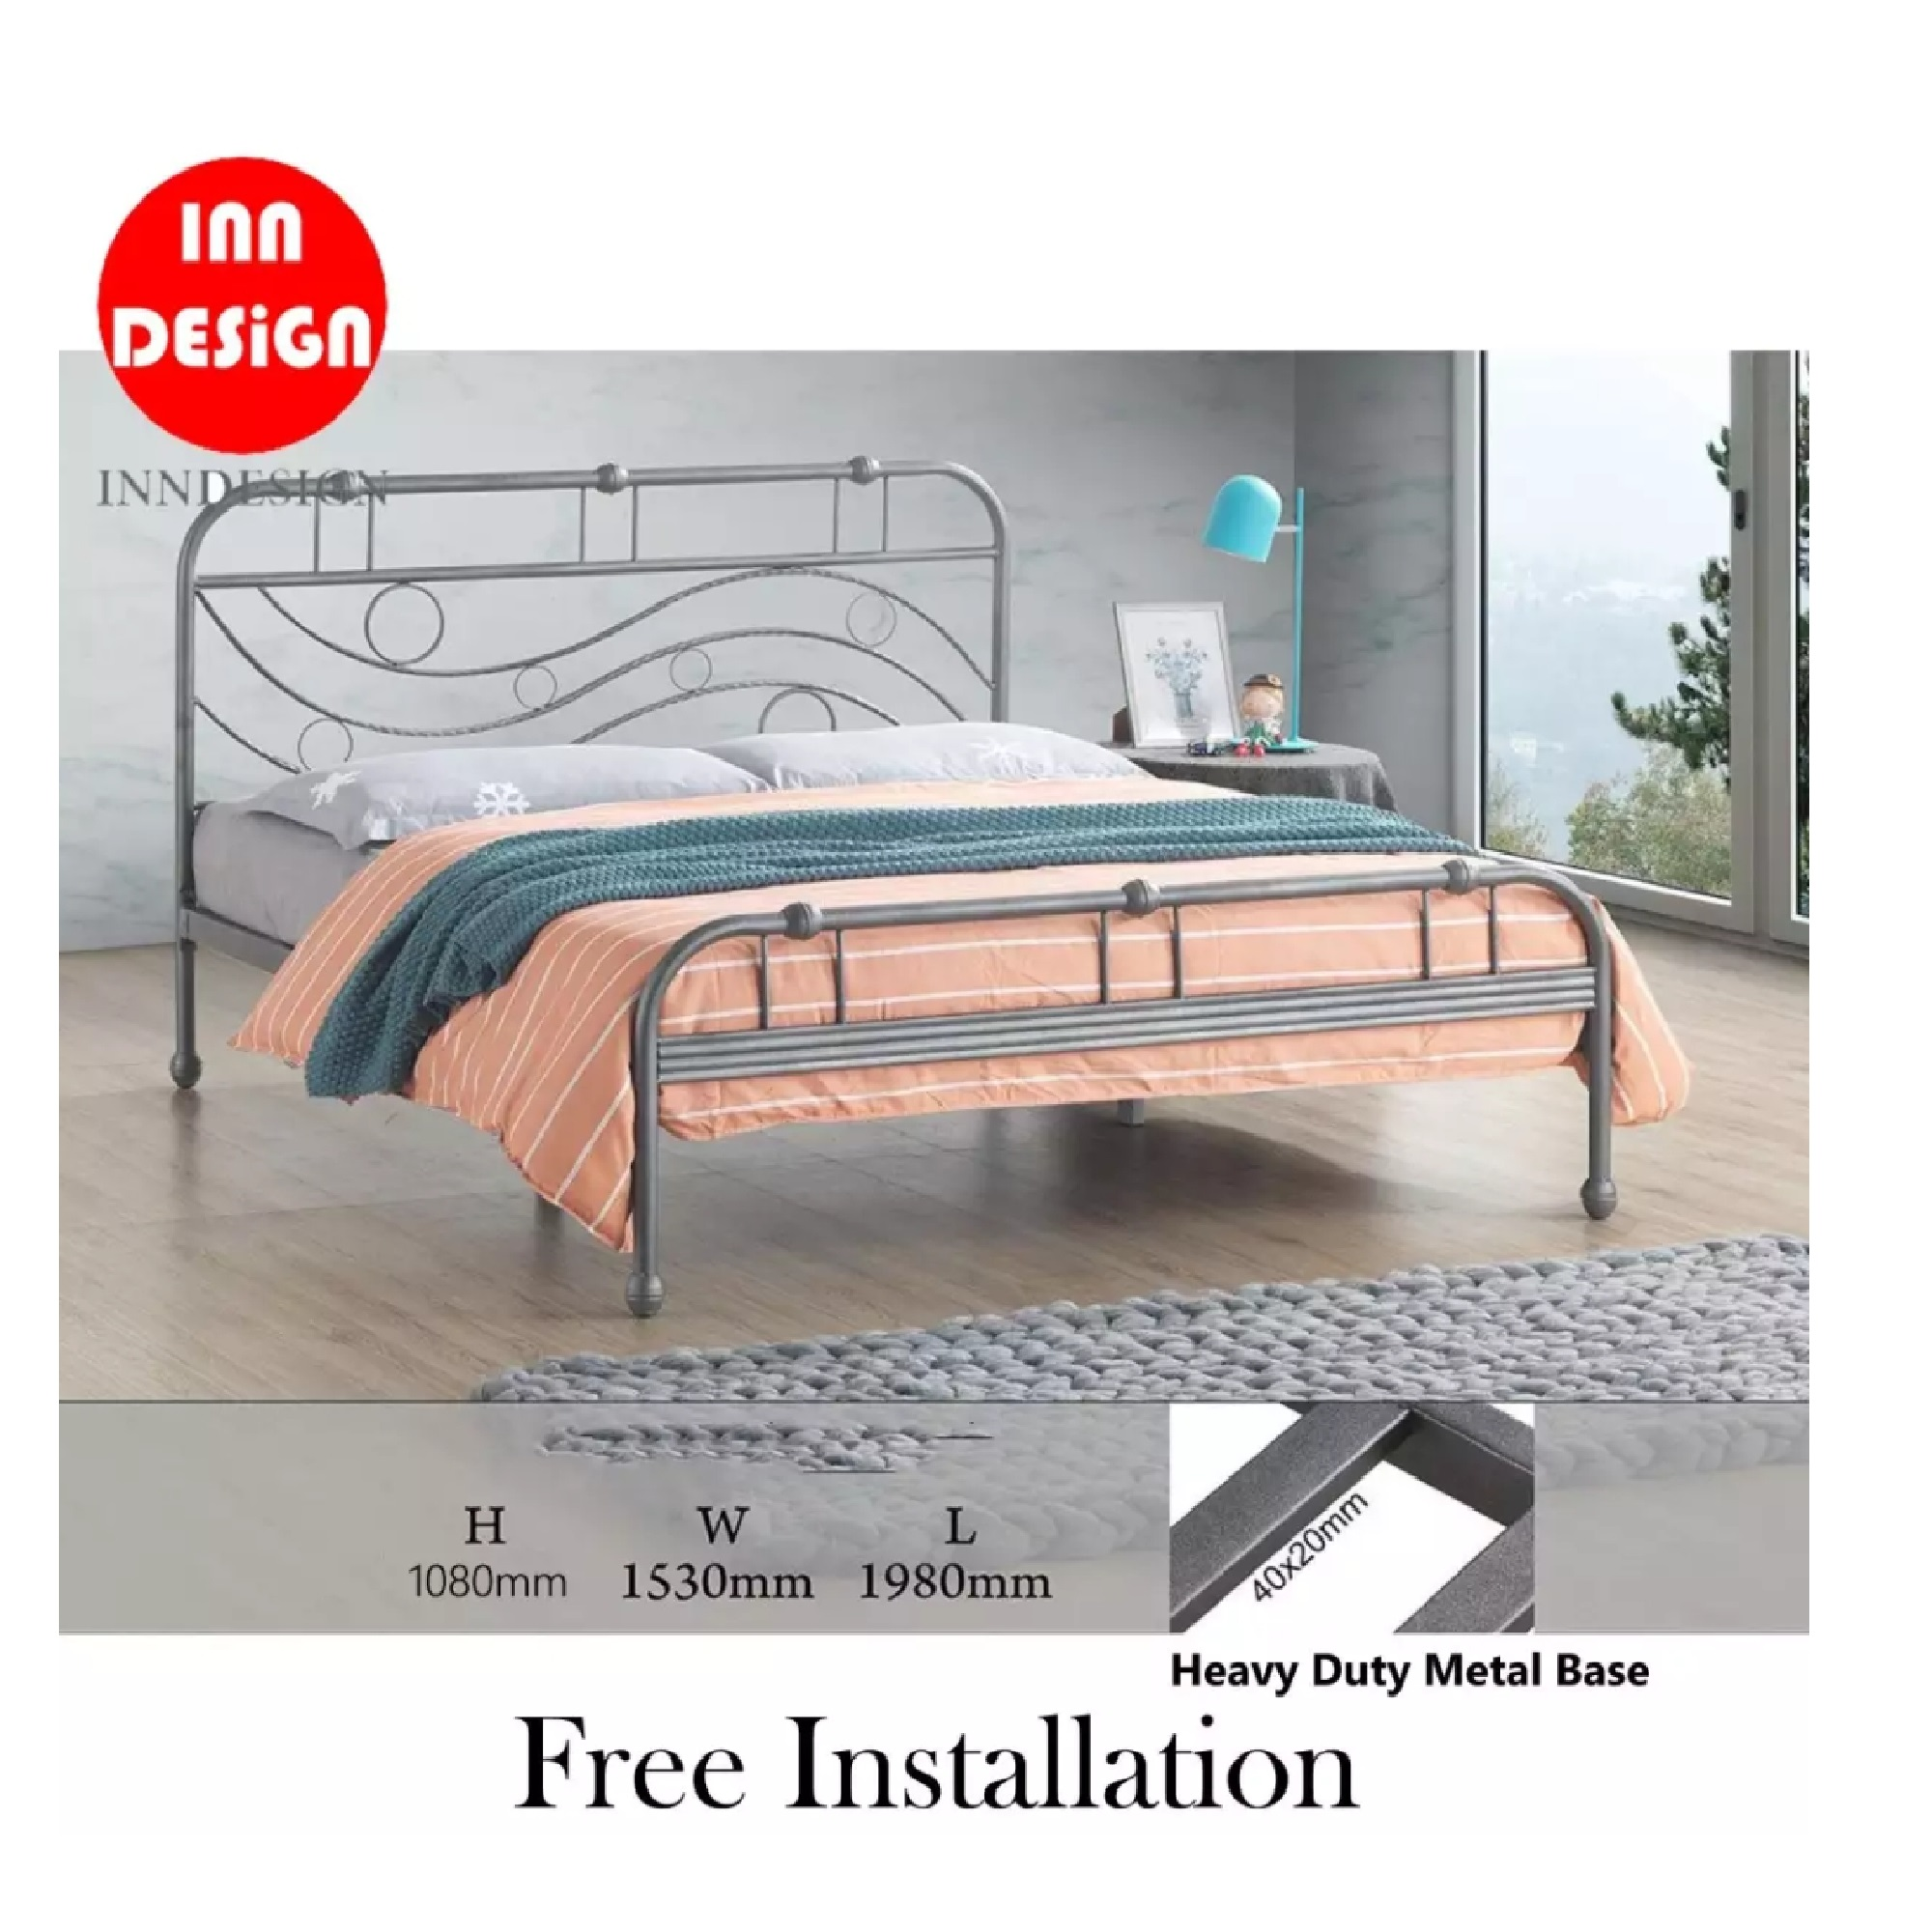 Zano Queen Heavy Duty Metal Bedframe / Bed / Bed frame (Free Delivery and Installation)